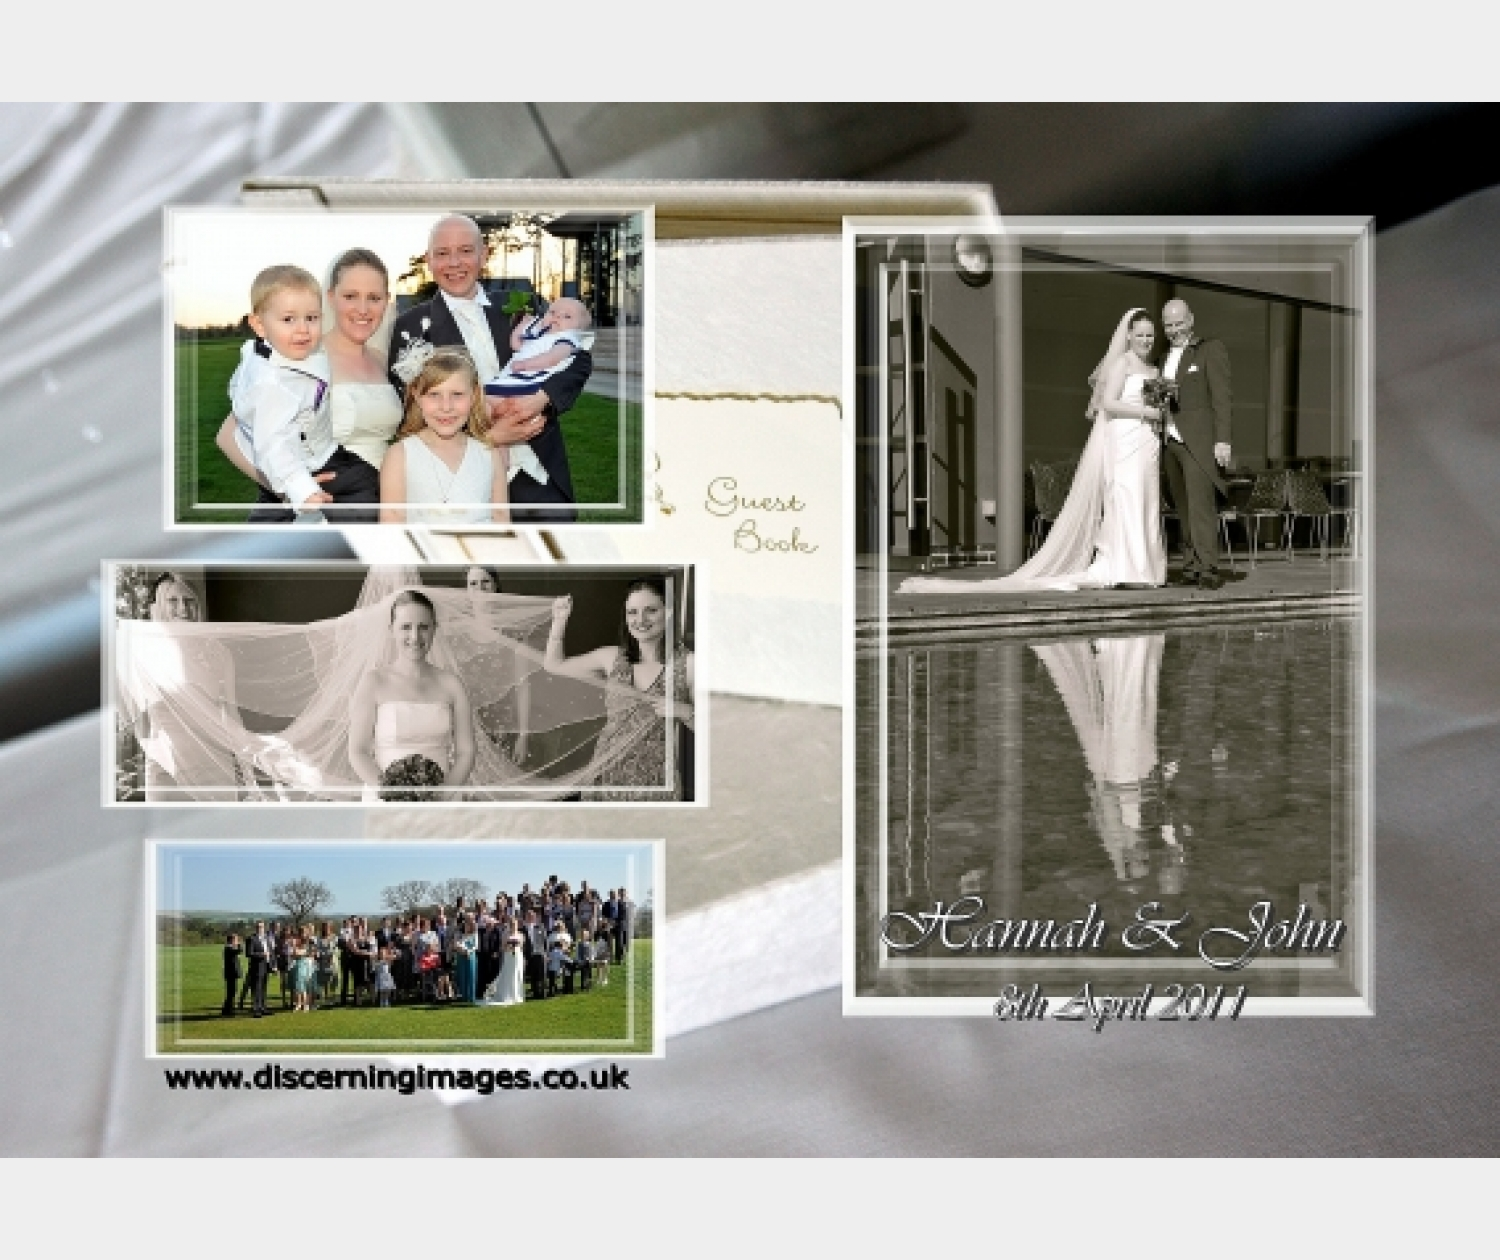 Discerning Images Photography - Brides Magazine Recommended Photographer 2010